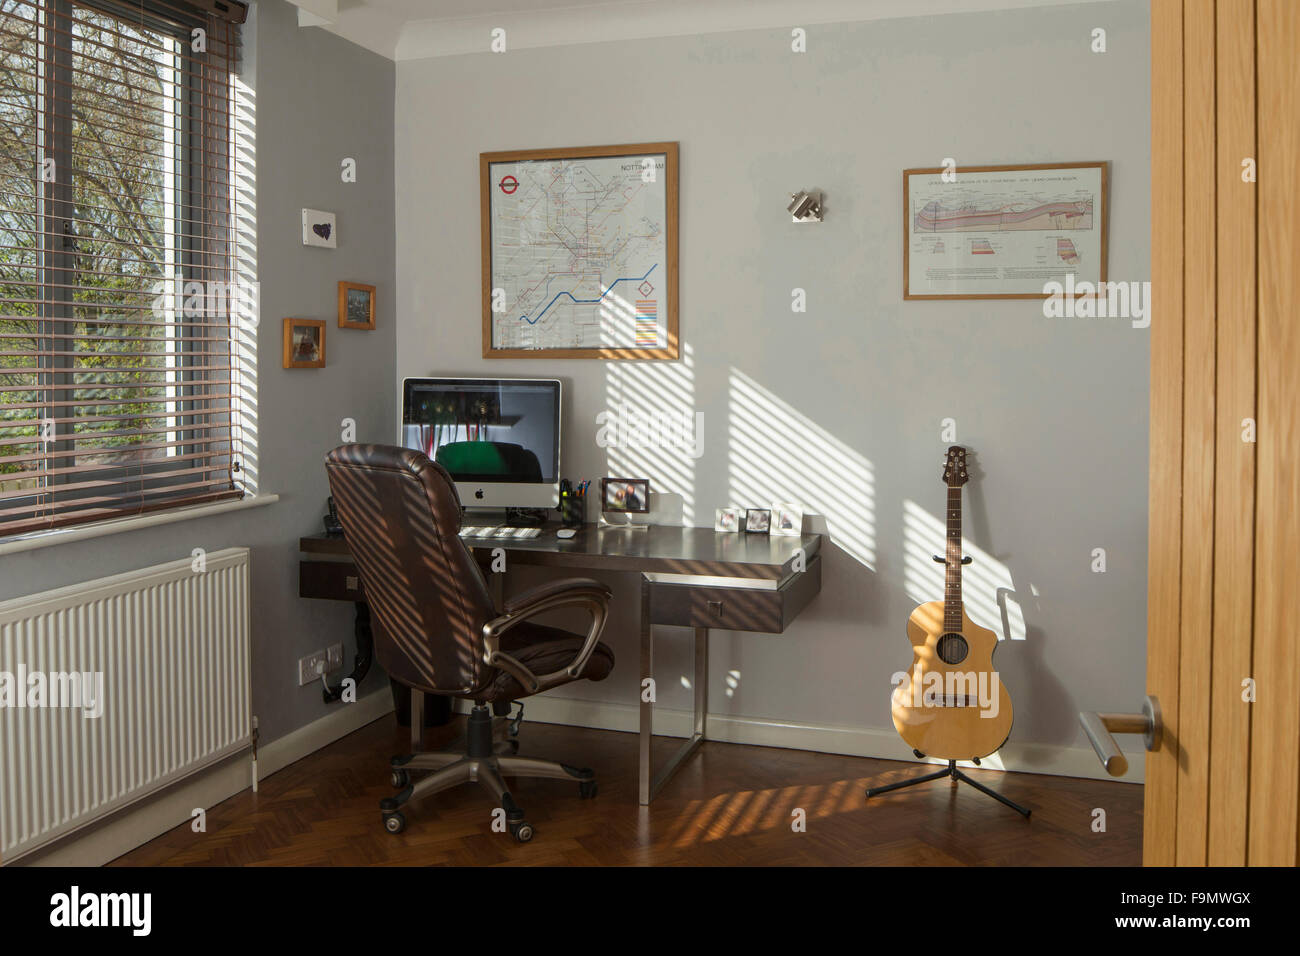 Home office study. A guitar, computer monitor and keyboard on a desk. White walls. - Stock Image